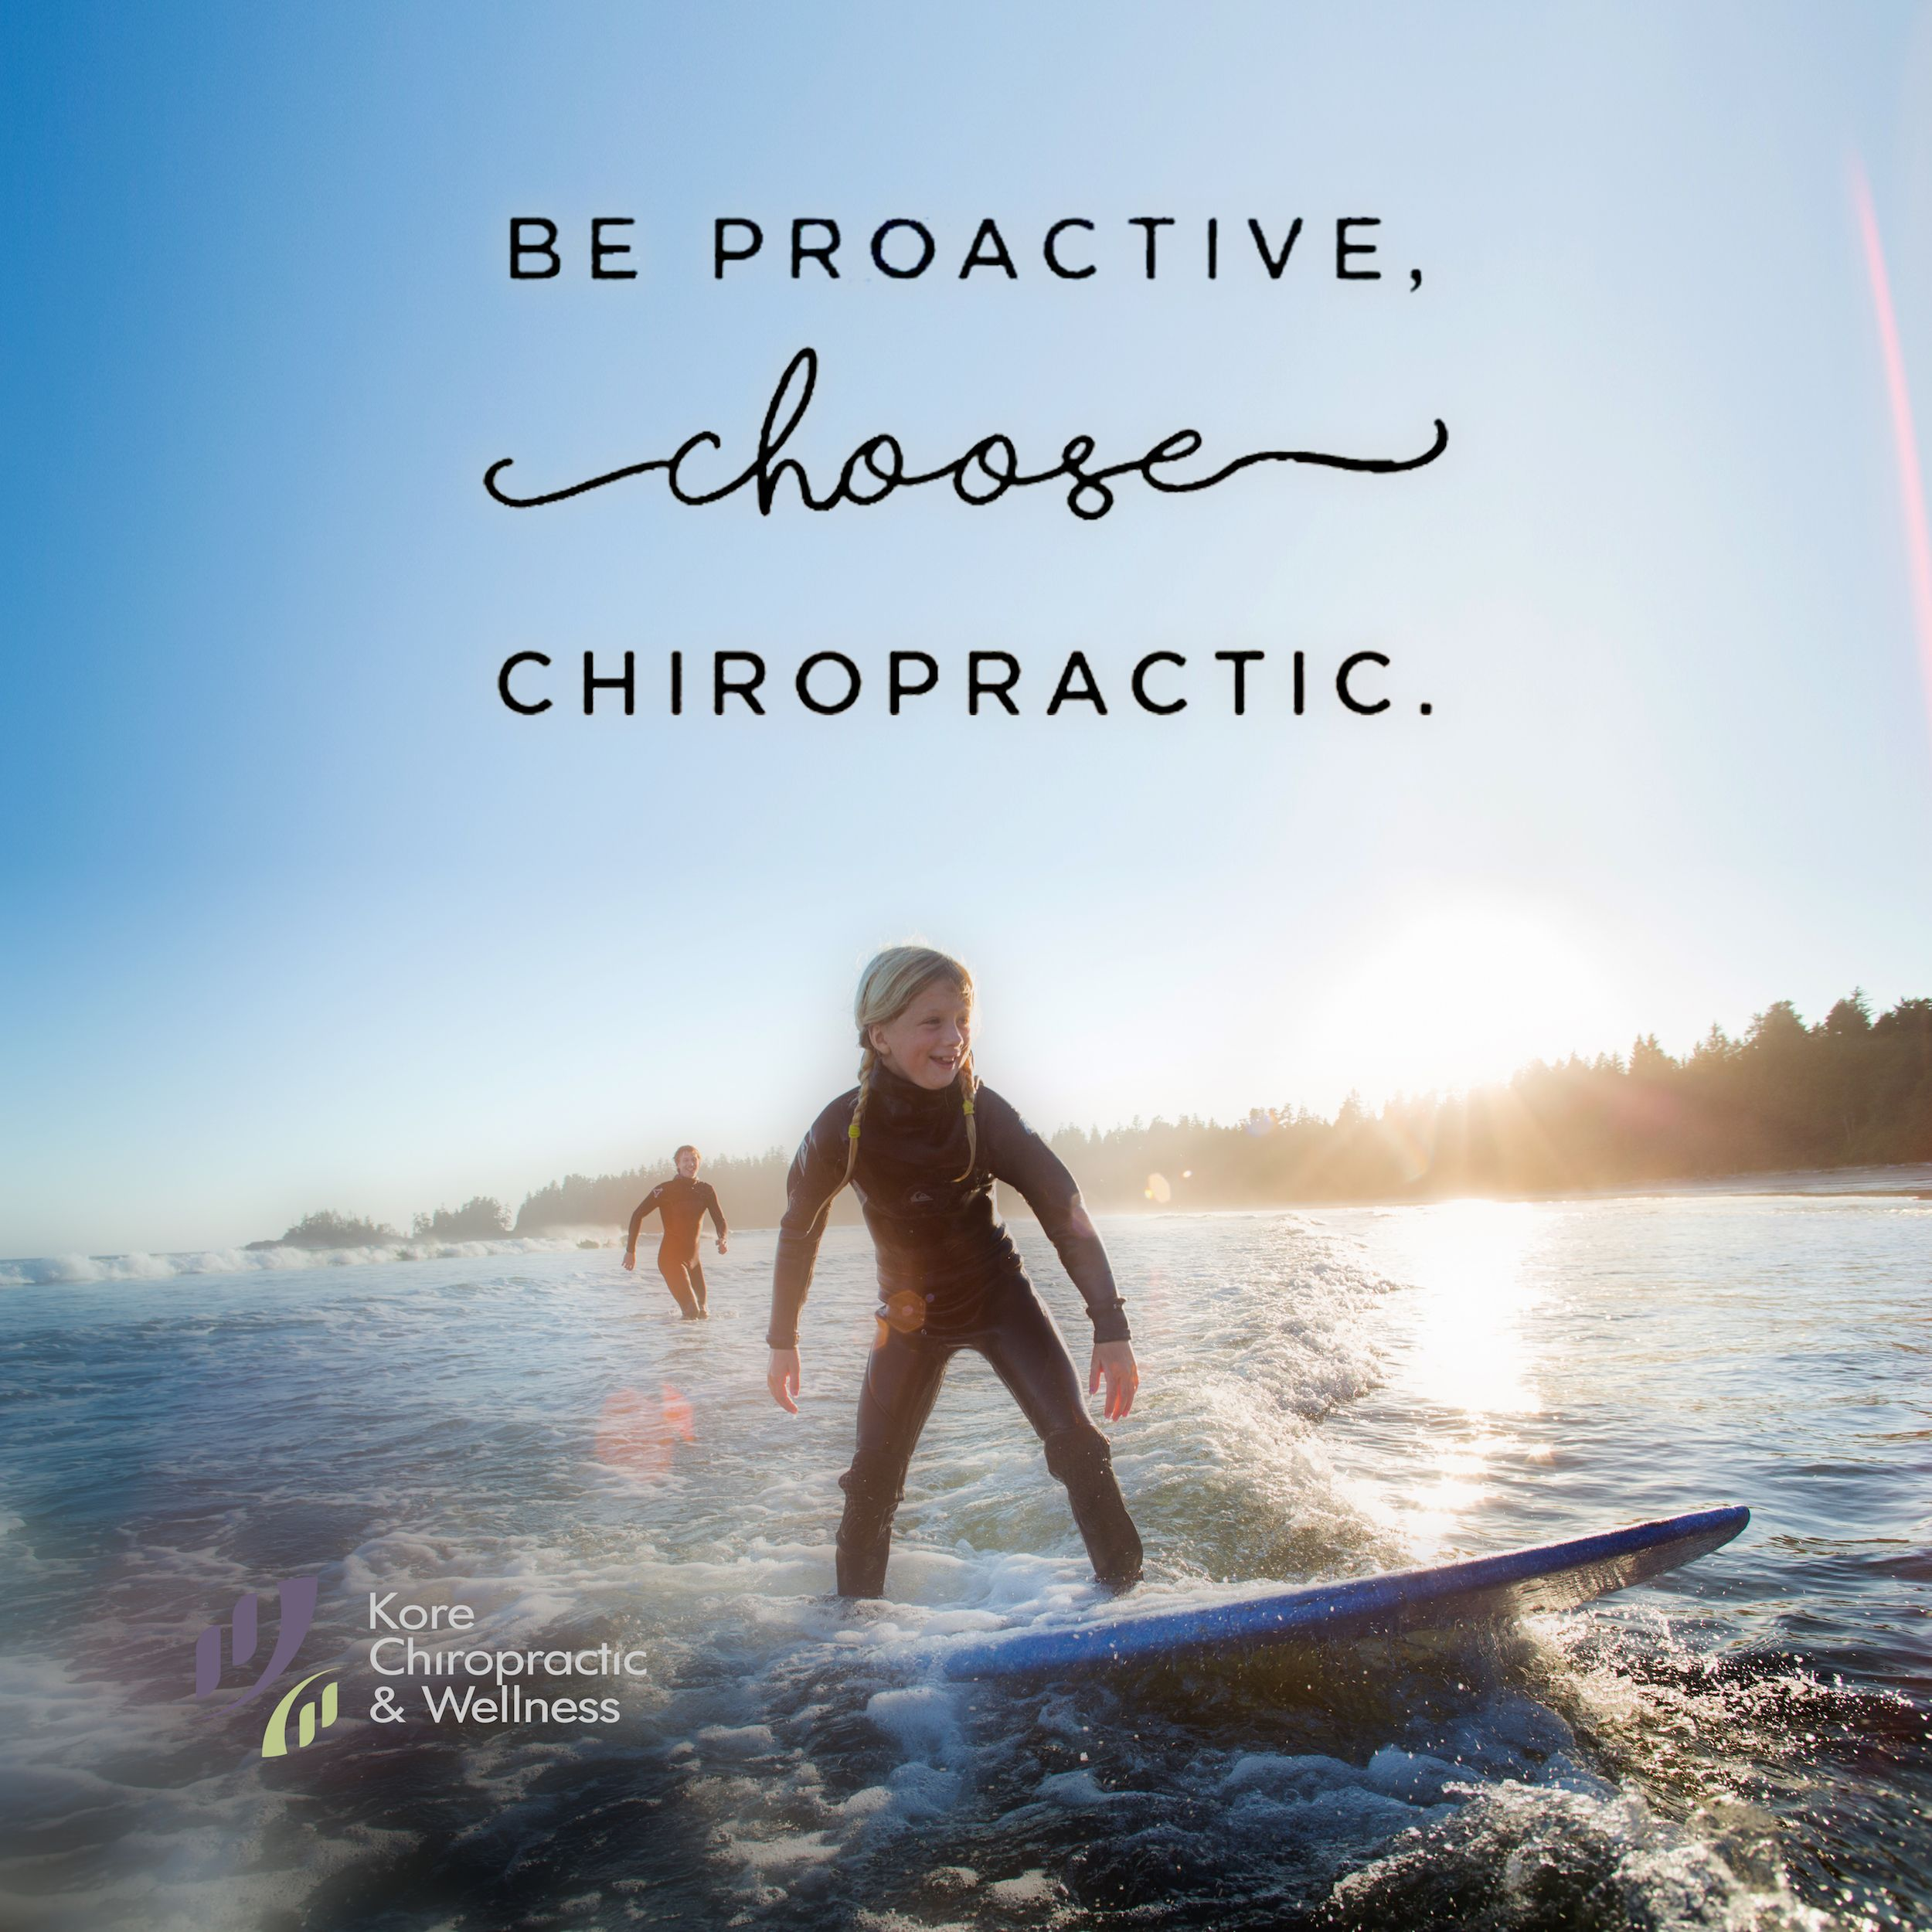 Be Proactive Chose Chiropractic Getadjusted Vancouver Newwest Burnaby Richmondbc Www Korechi Chiropractic Care Chiropractic Chiropractic Wellness